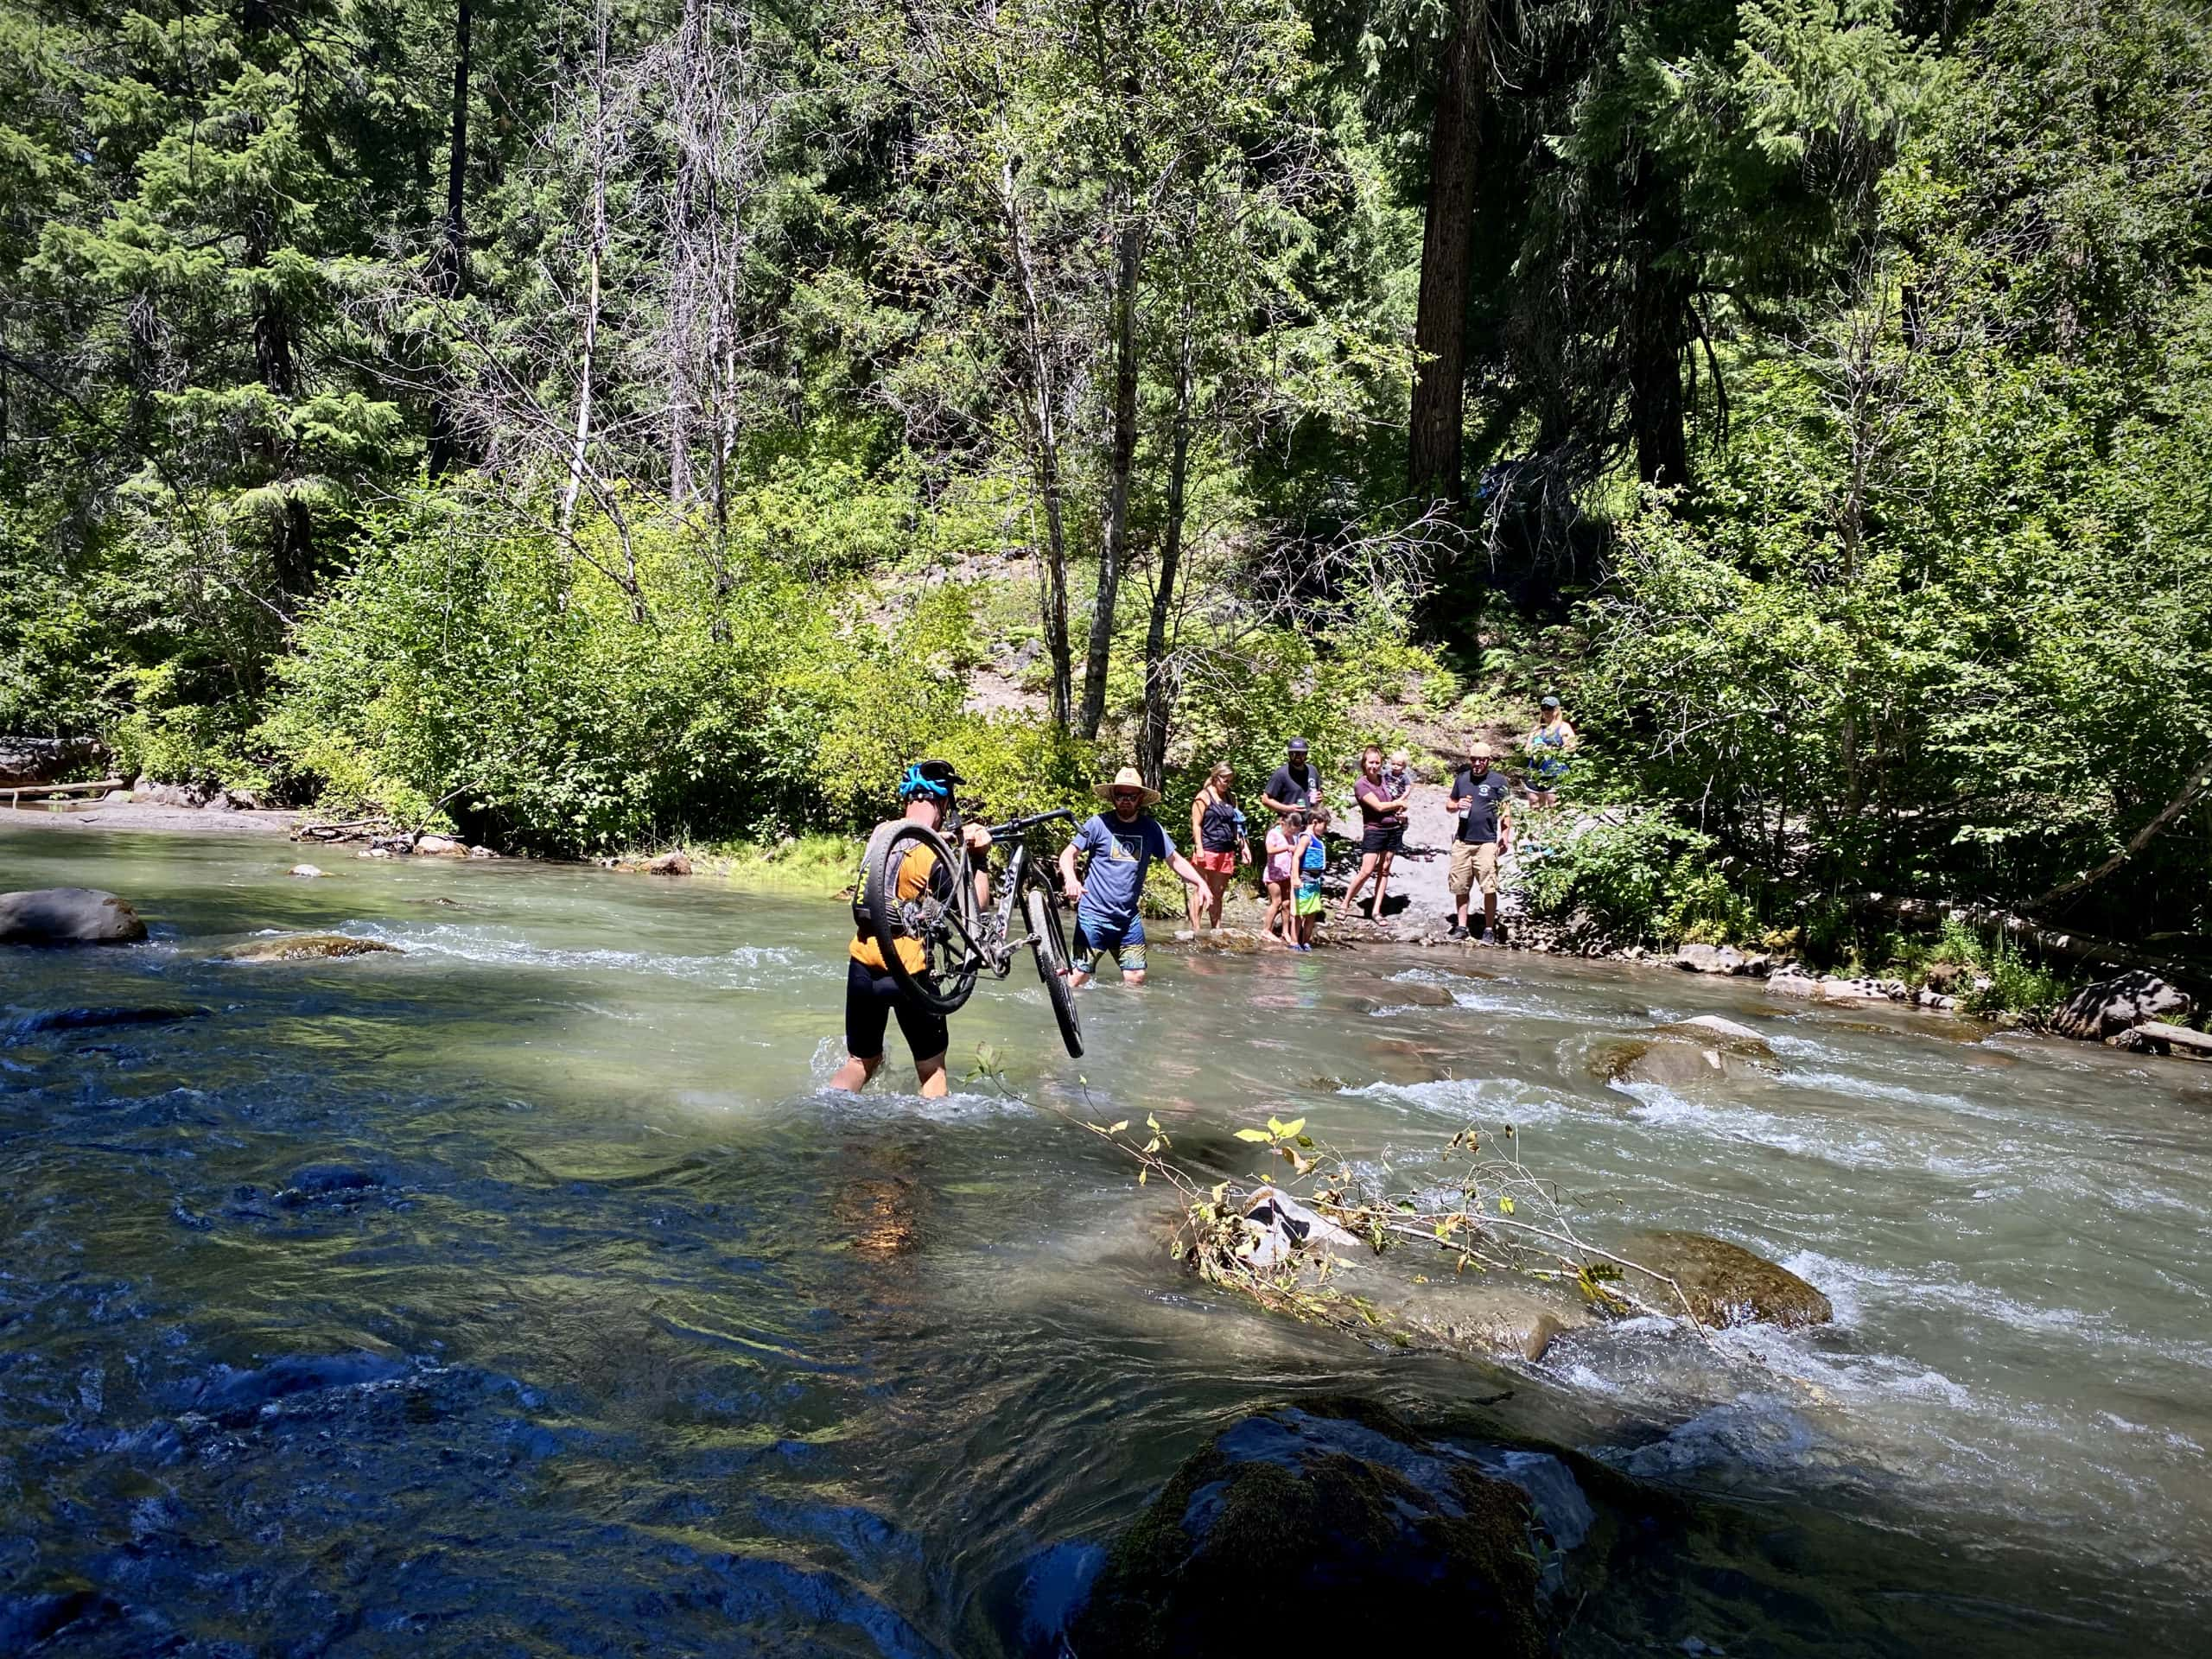 Cyclists carrying bikes across the White River near Keeps Mill campground in the Mt Hood National forest.